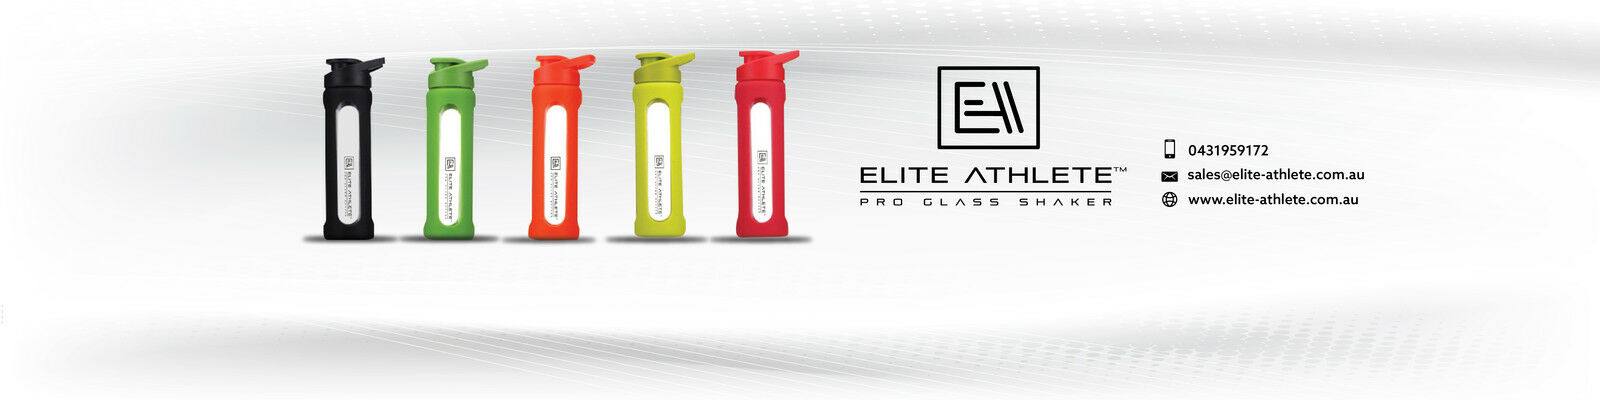 Elite Athlete Protein Glass Shaker